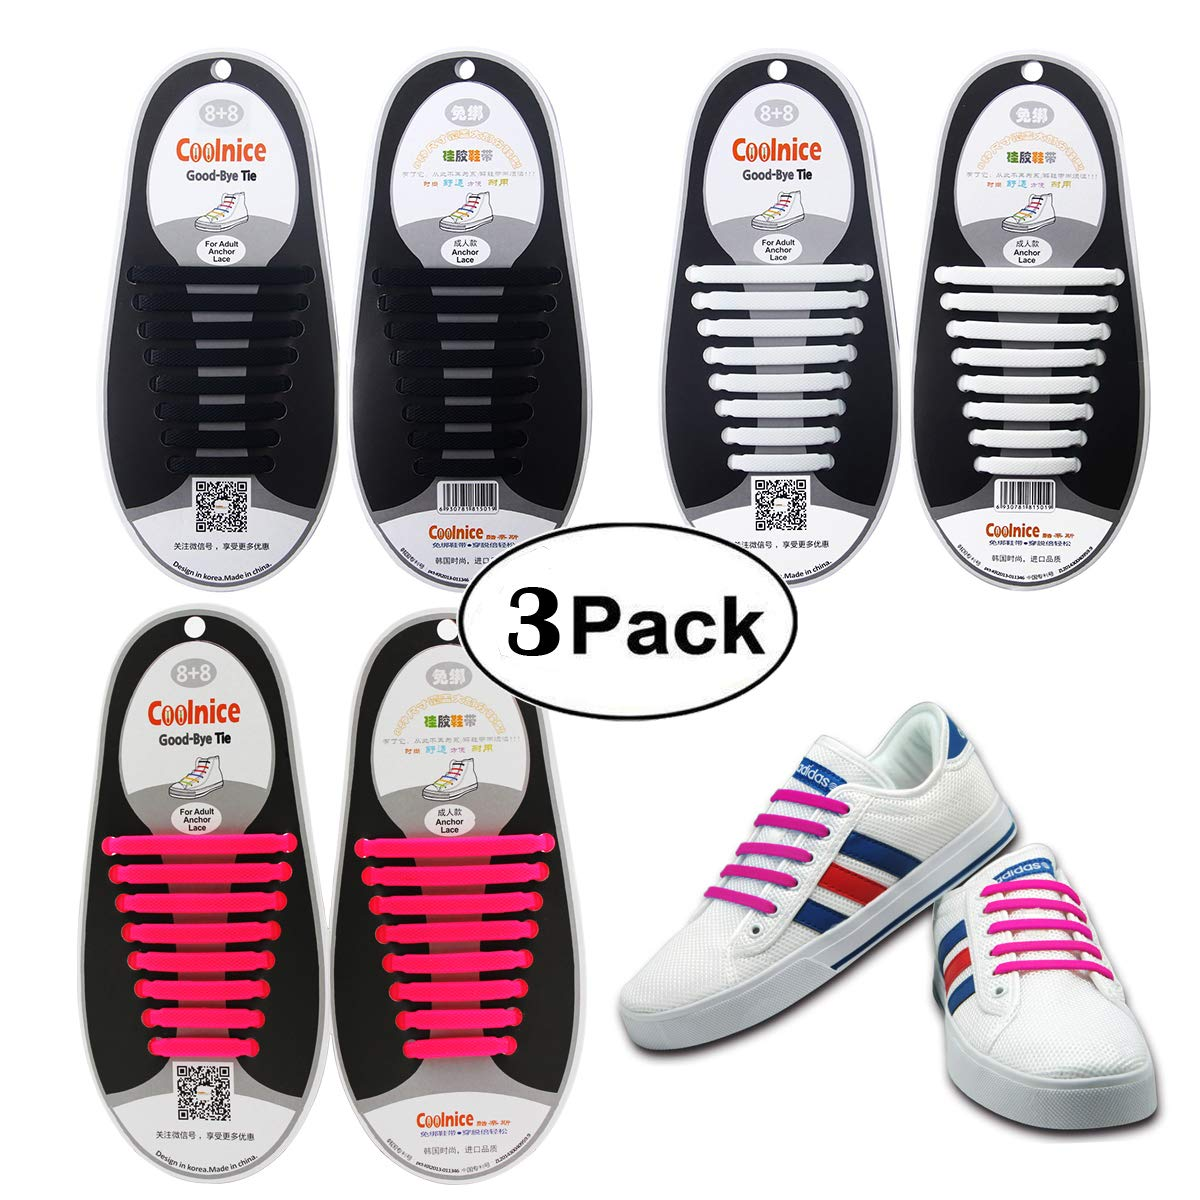 Shackcom No Tie Flat Shoelaces 3 Pack For Kids Men Women | Waterproof Stretchy Silicone Tieless Shoe Laces | For Athletic Dress Shoes Hiking Boots More | Eliminate Loose Shoelace Accidents